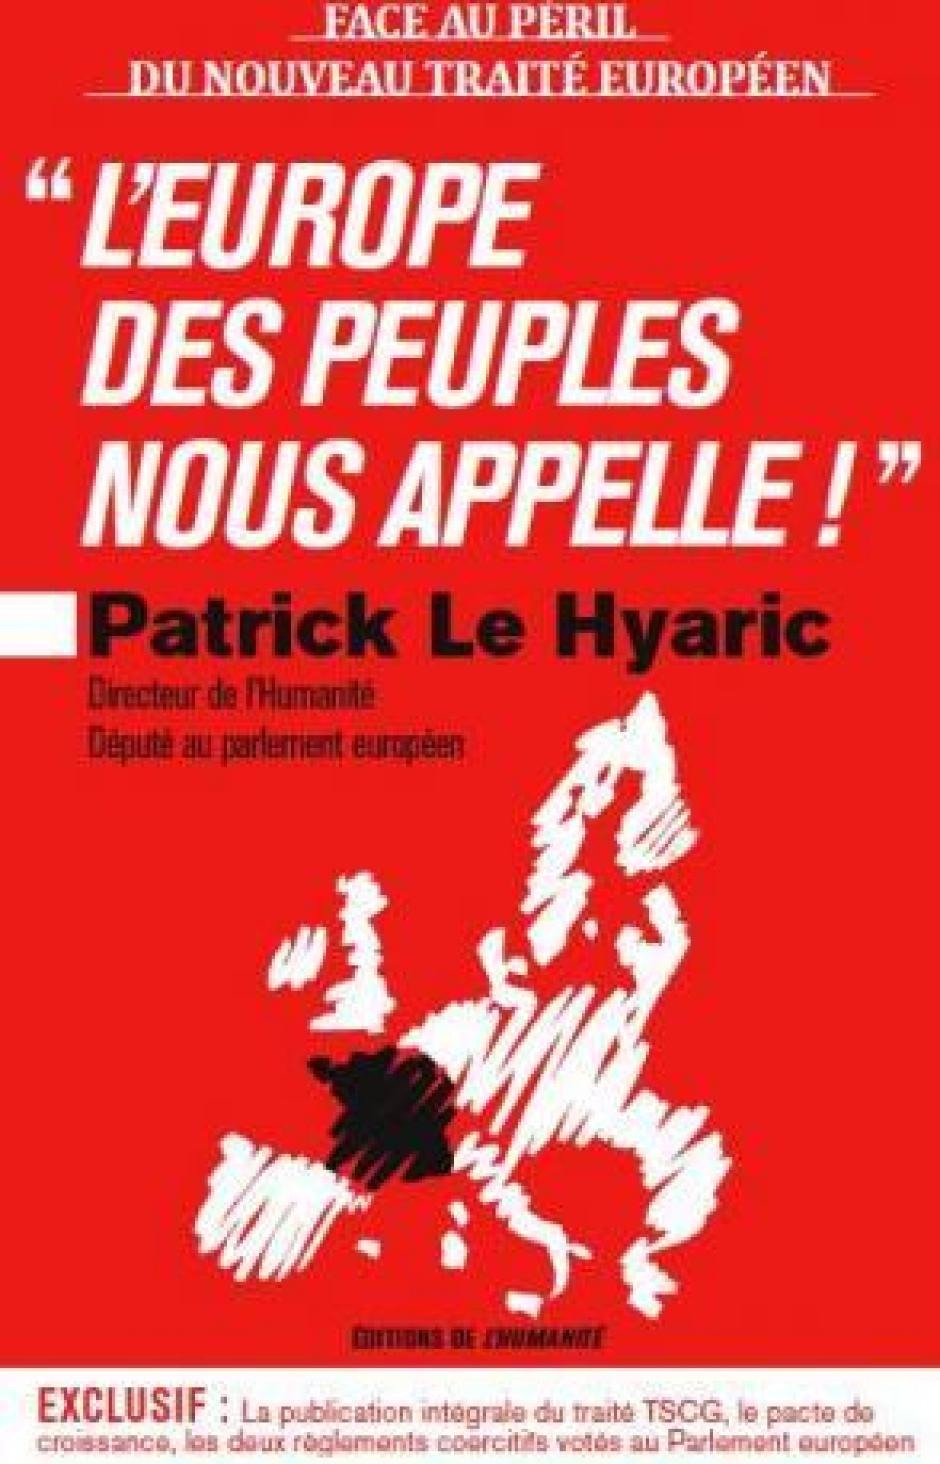 L'Europe des peuples nous appelle